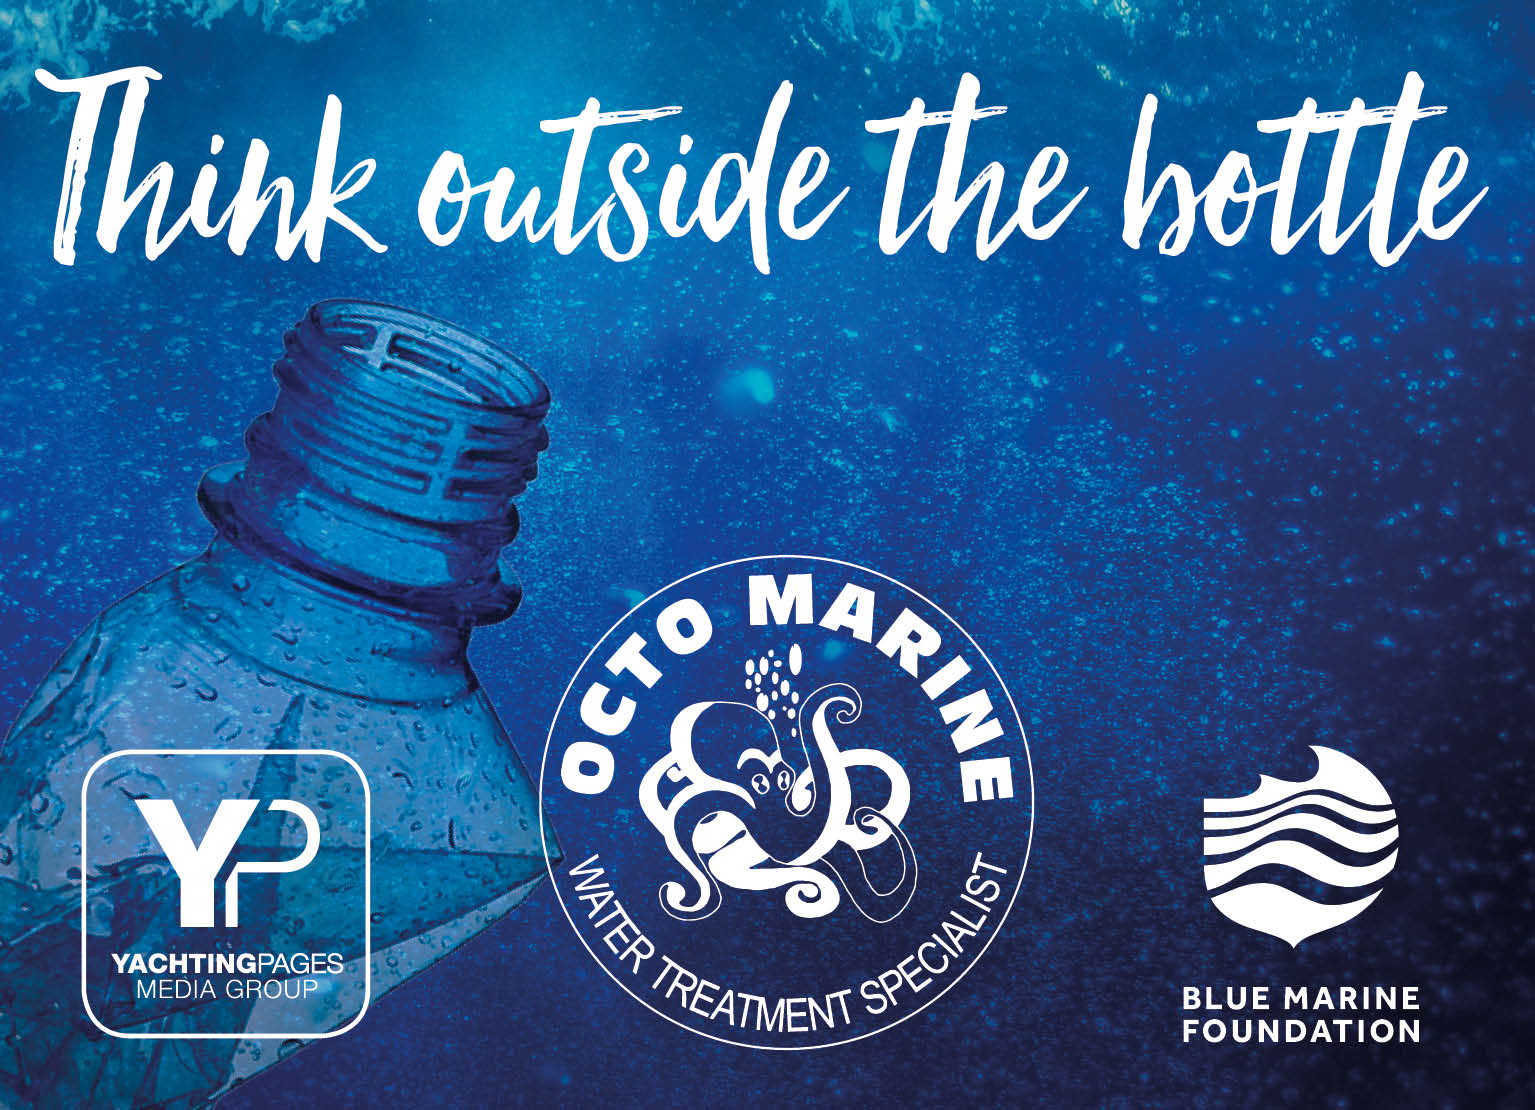 Save Our Seas Bottle Project Announced by Octo Marine in Partnership with Yachting Pages Media Group and Blue Marine Foundation